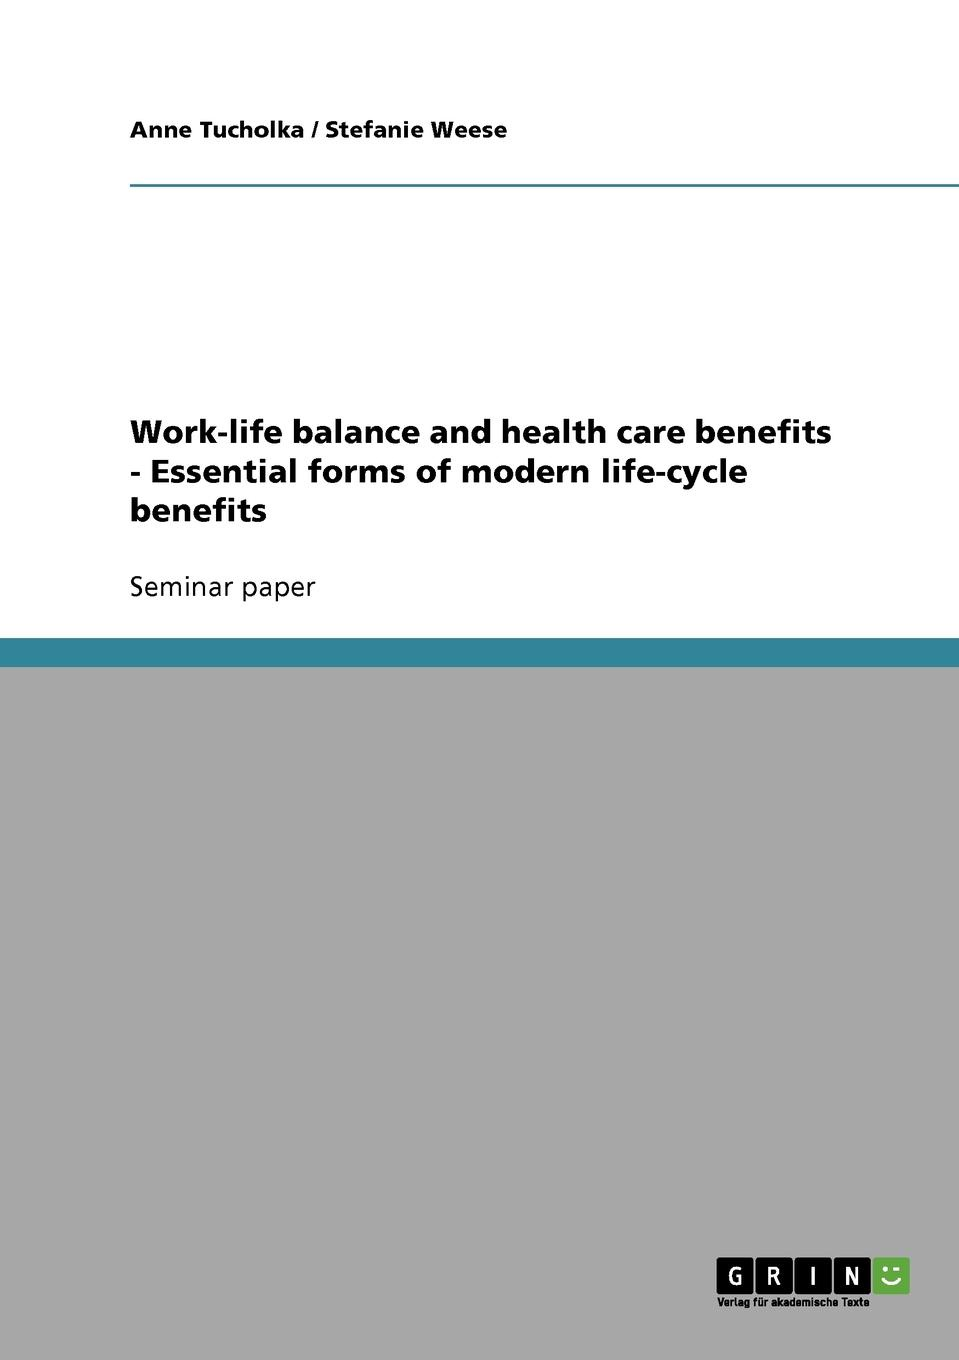 Anne Tucholka, Stefanie Weese Work-life balance and health care benefits - Essential forms of modern life-cycle benefits marc noyen design reviews and their impacts on the enterprise life cycle